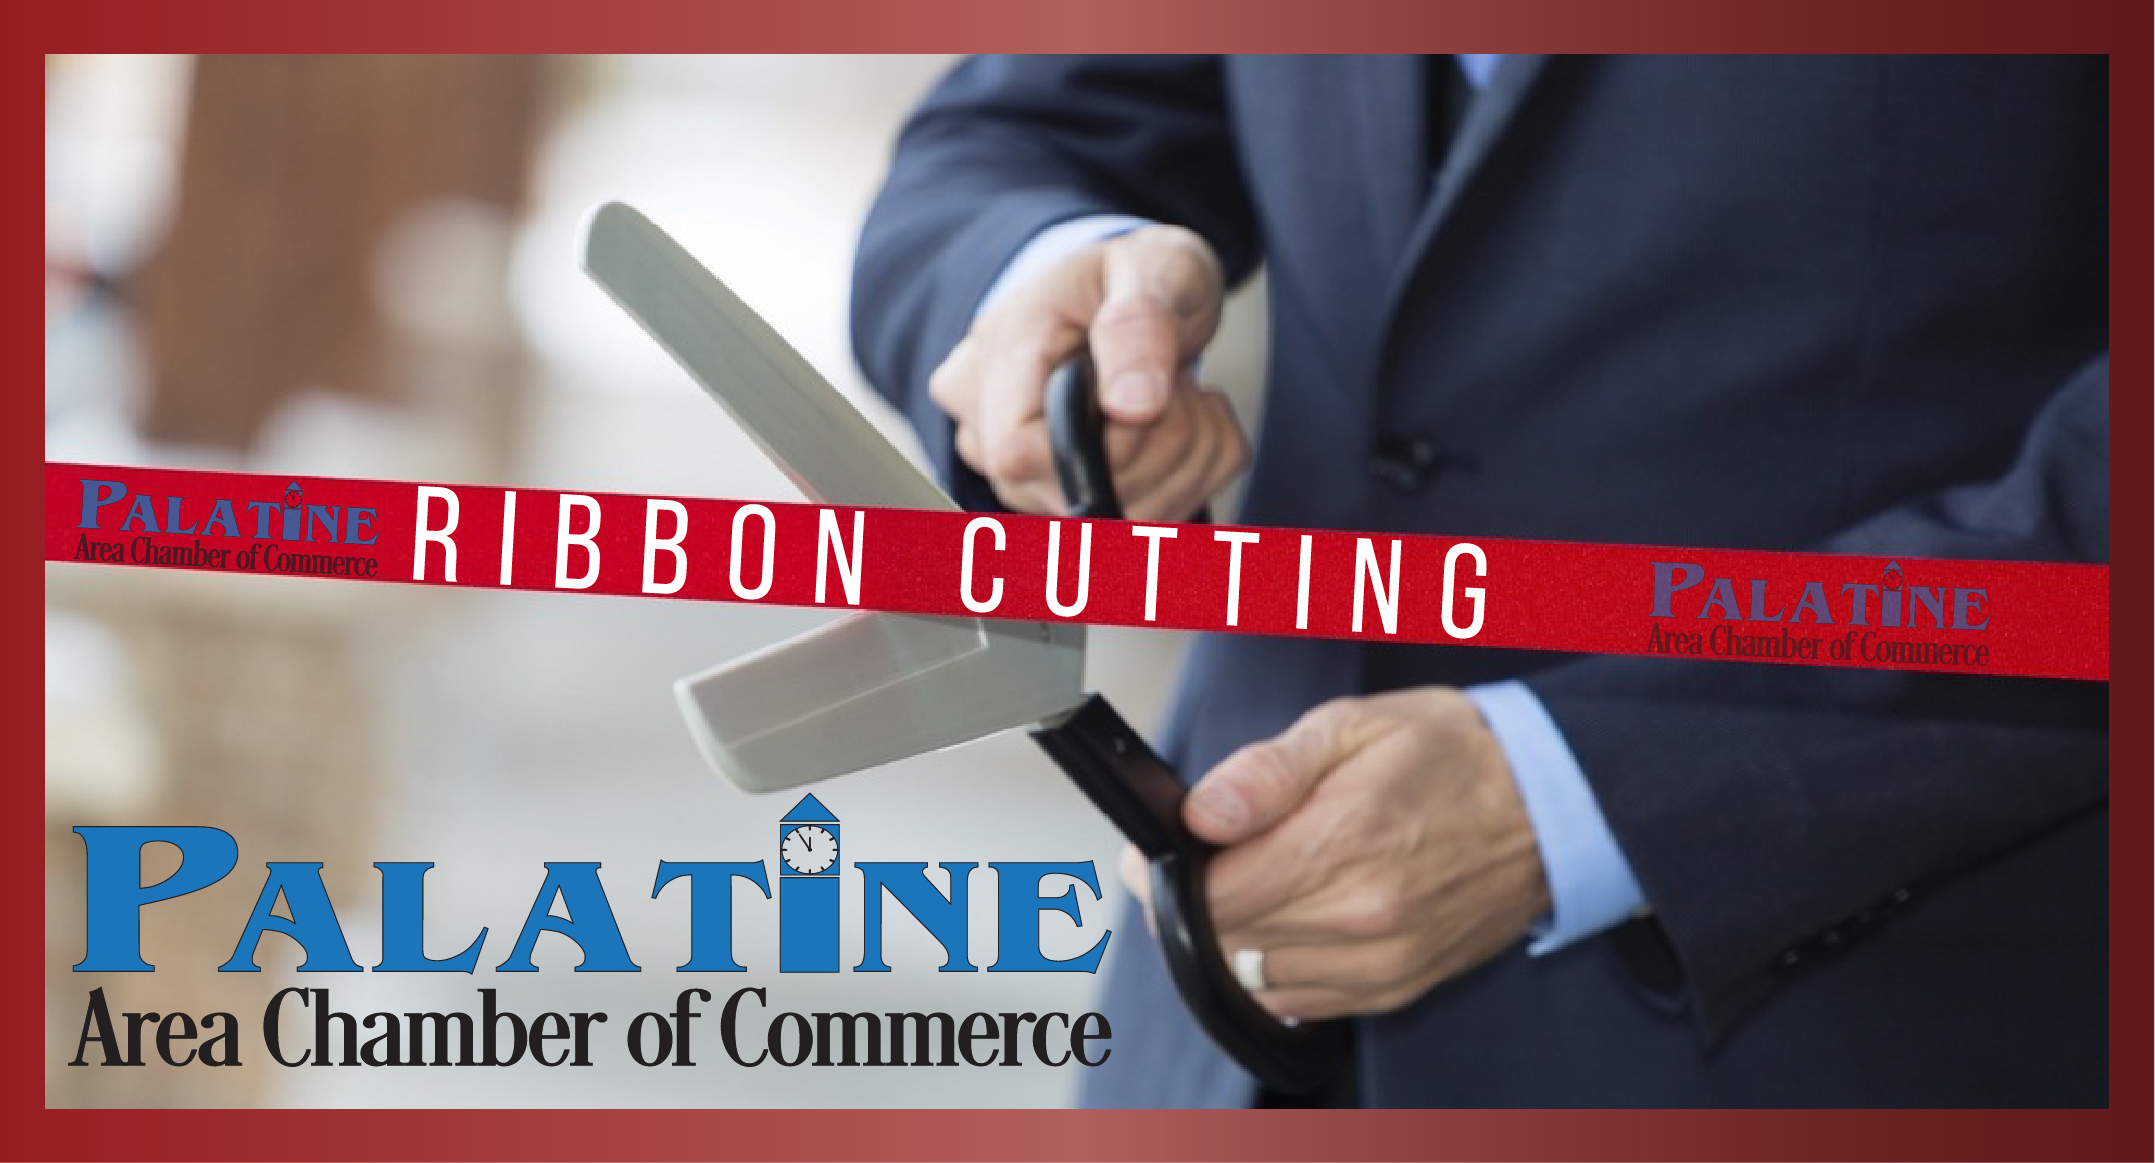 Ribbon-Cutting.jpg